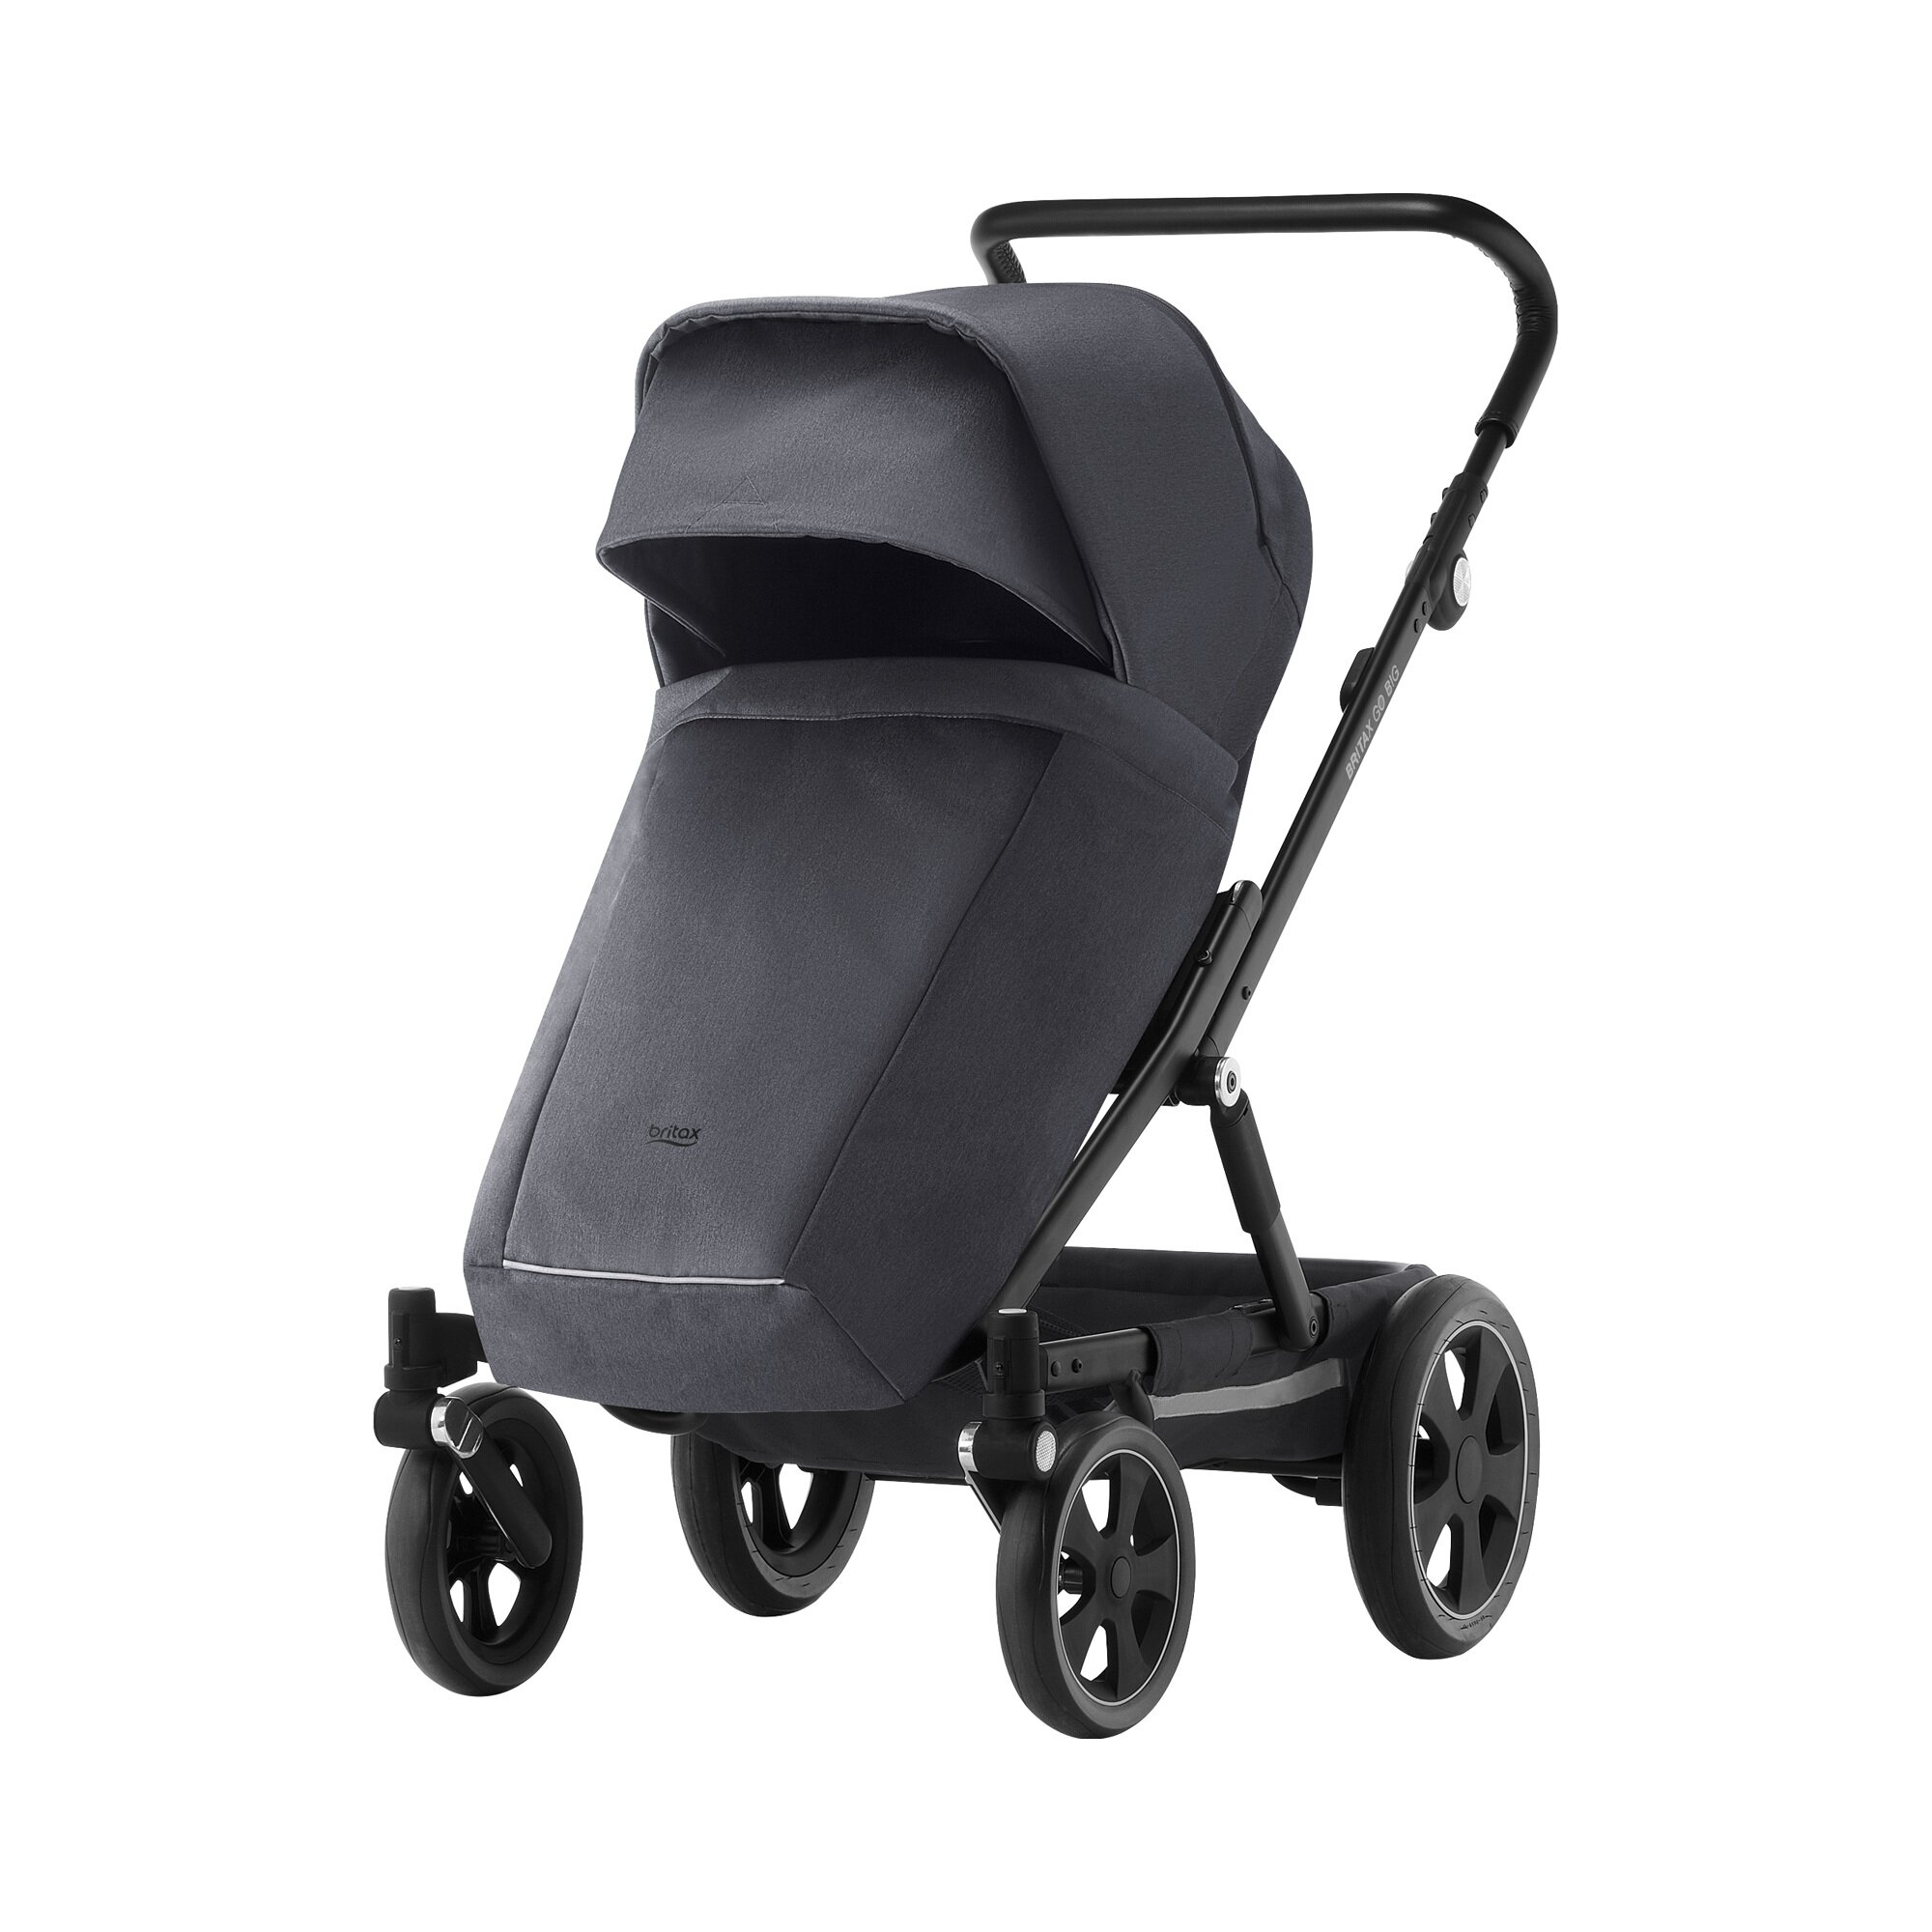 premium-go-big-kinderwagen-design-2018-grau